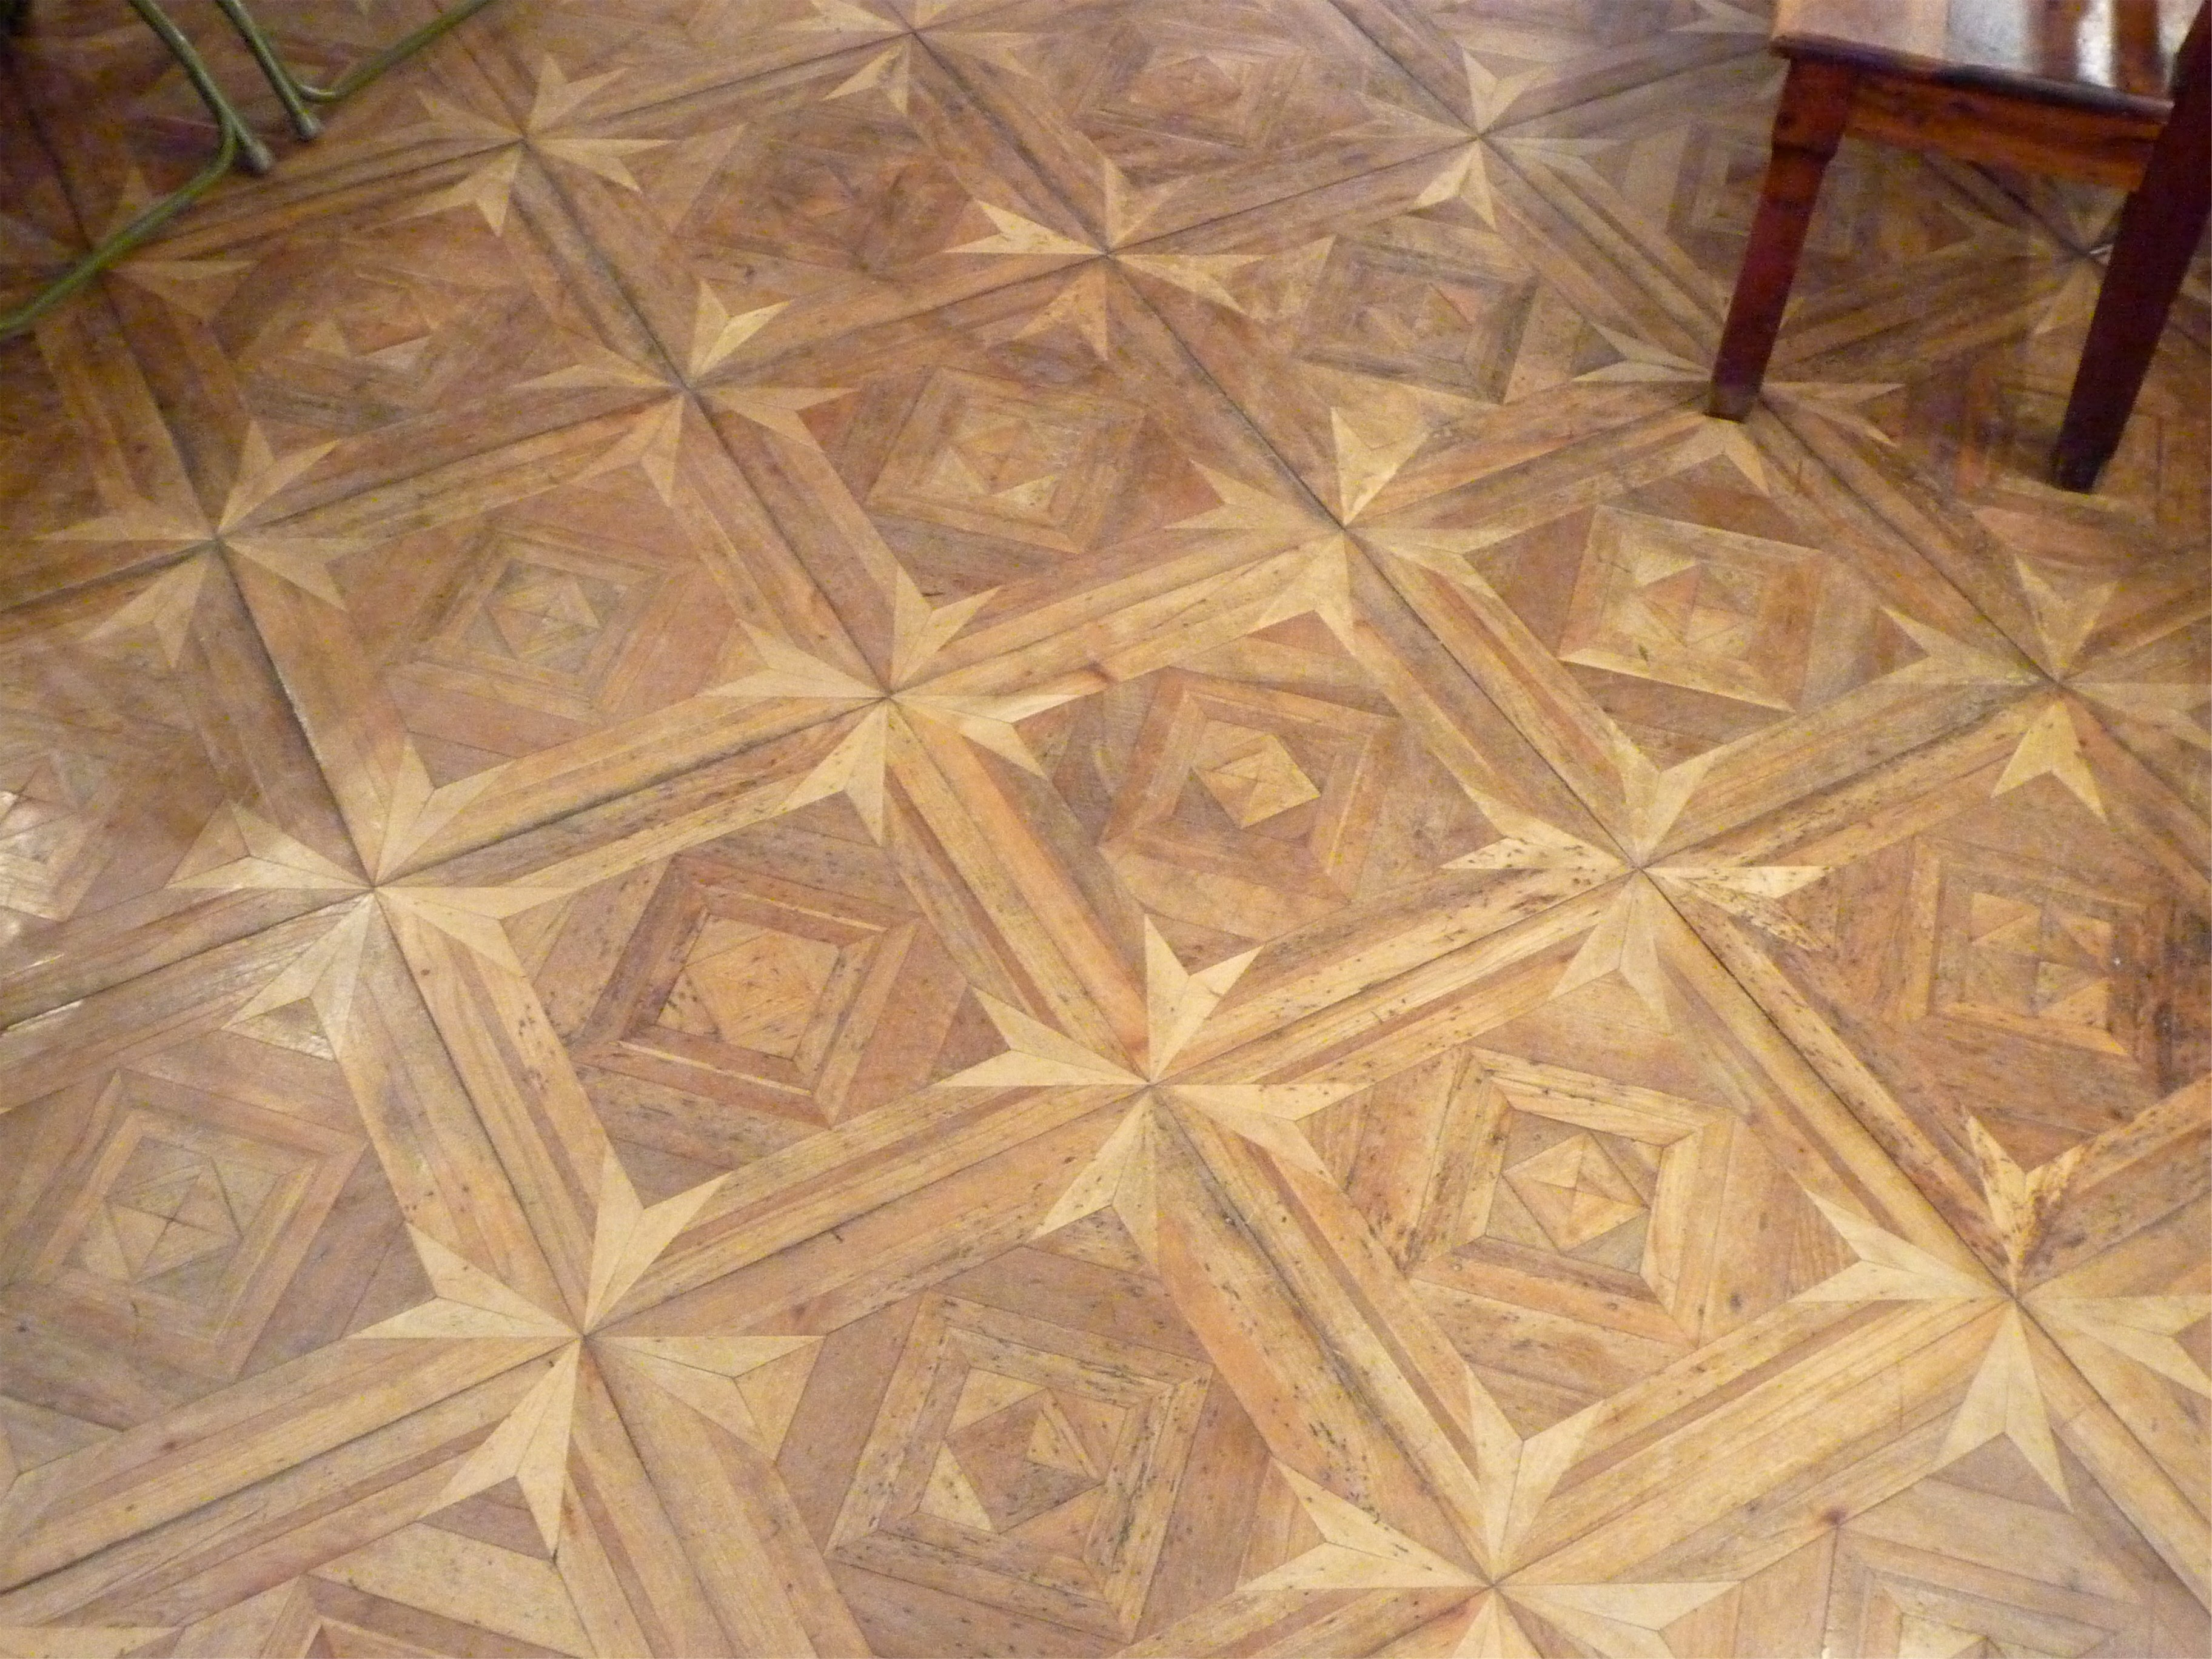 Parquet panel with design - Grenoble/France